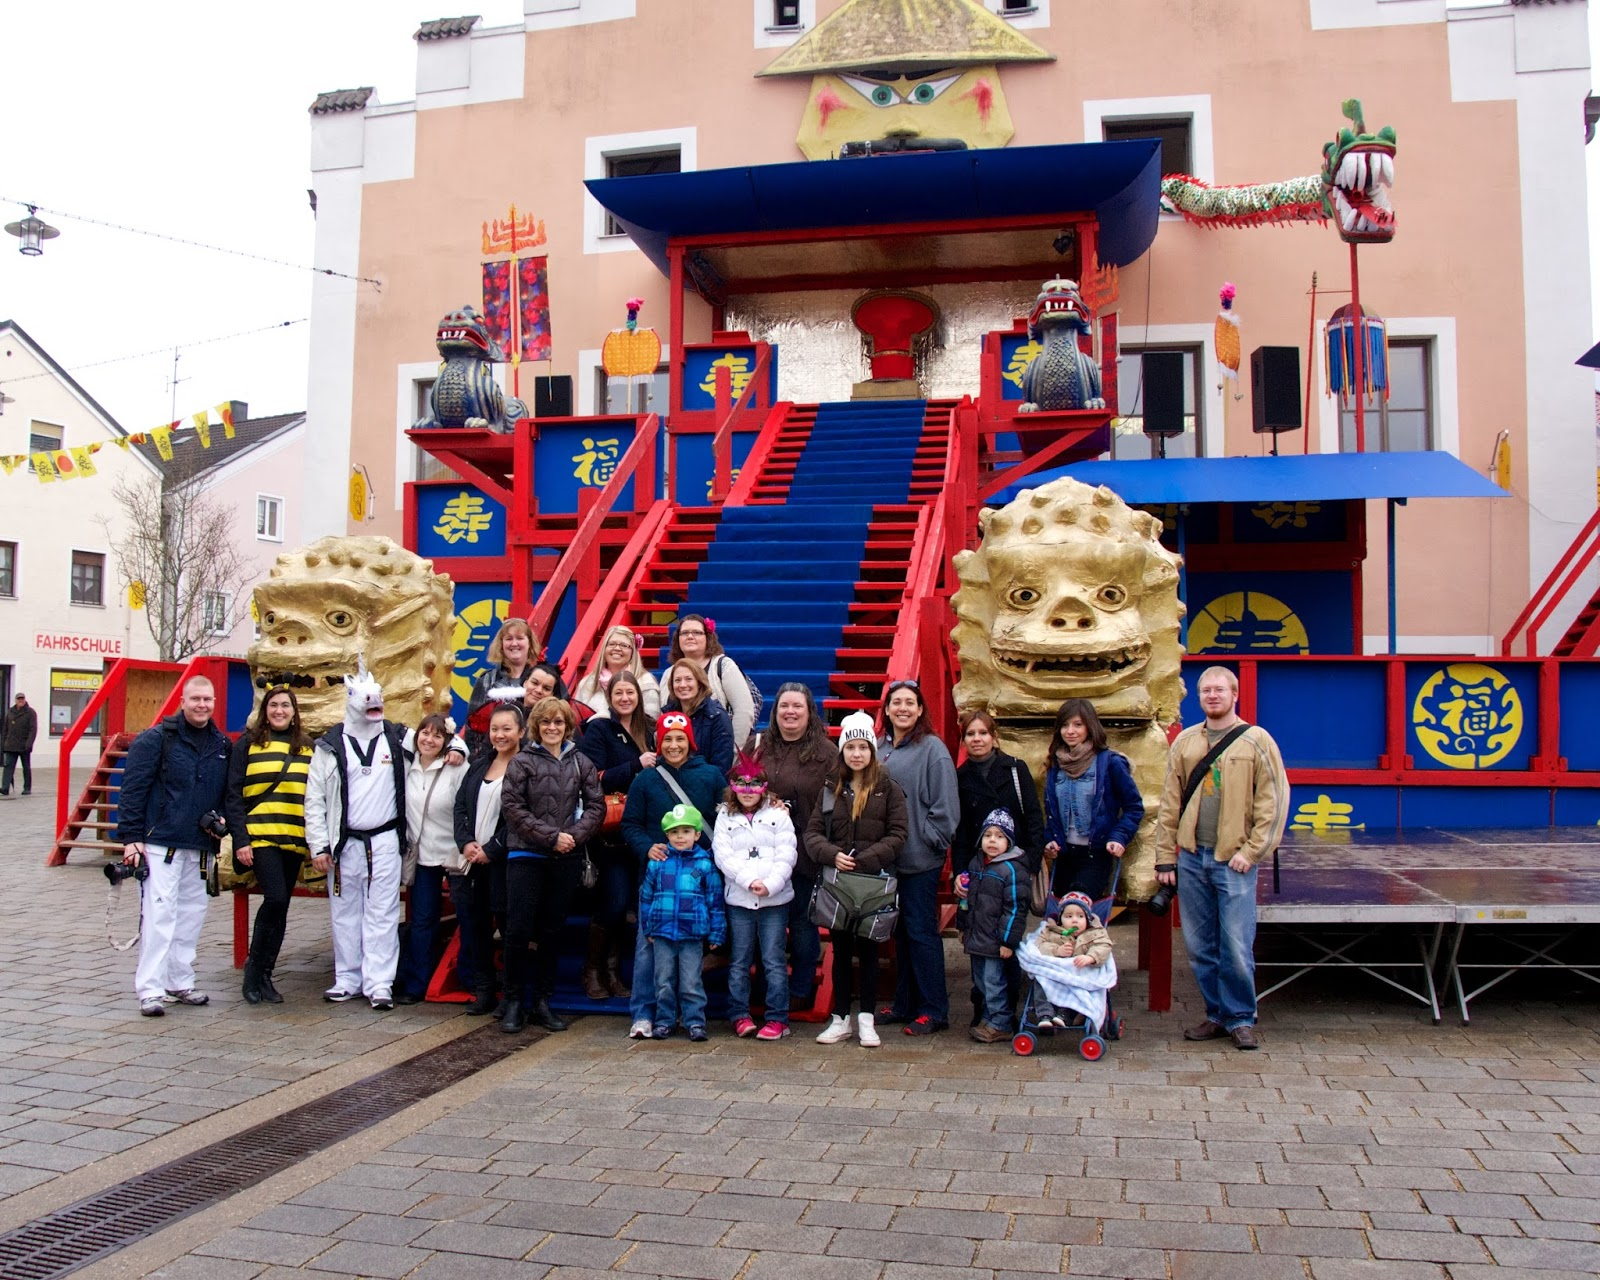 Francois Illas New Tradition: Our Army Life (according To The Wife!): Chinese Fasching